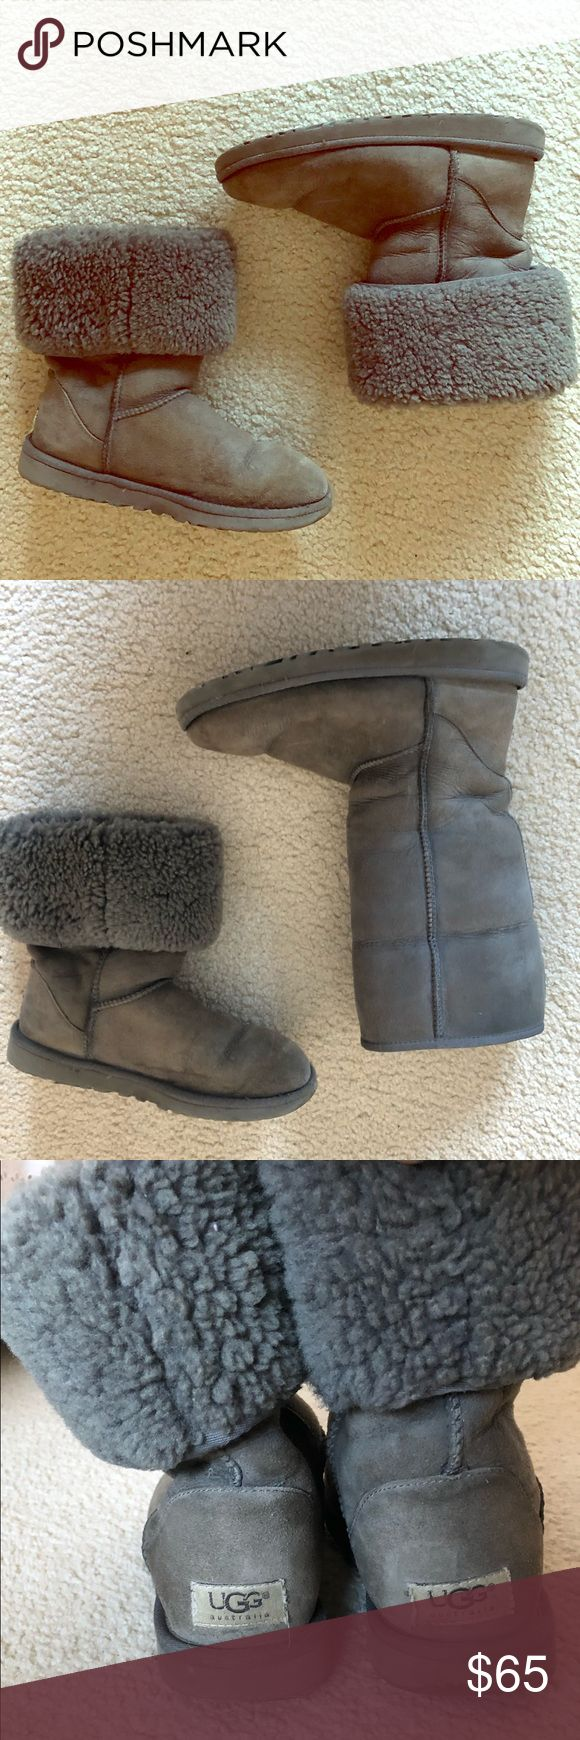 Tall grey UGG boots Tall grey ugg boots. Size 7. Gently worn UGG Shoes